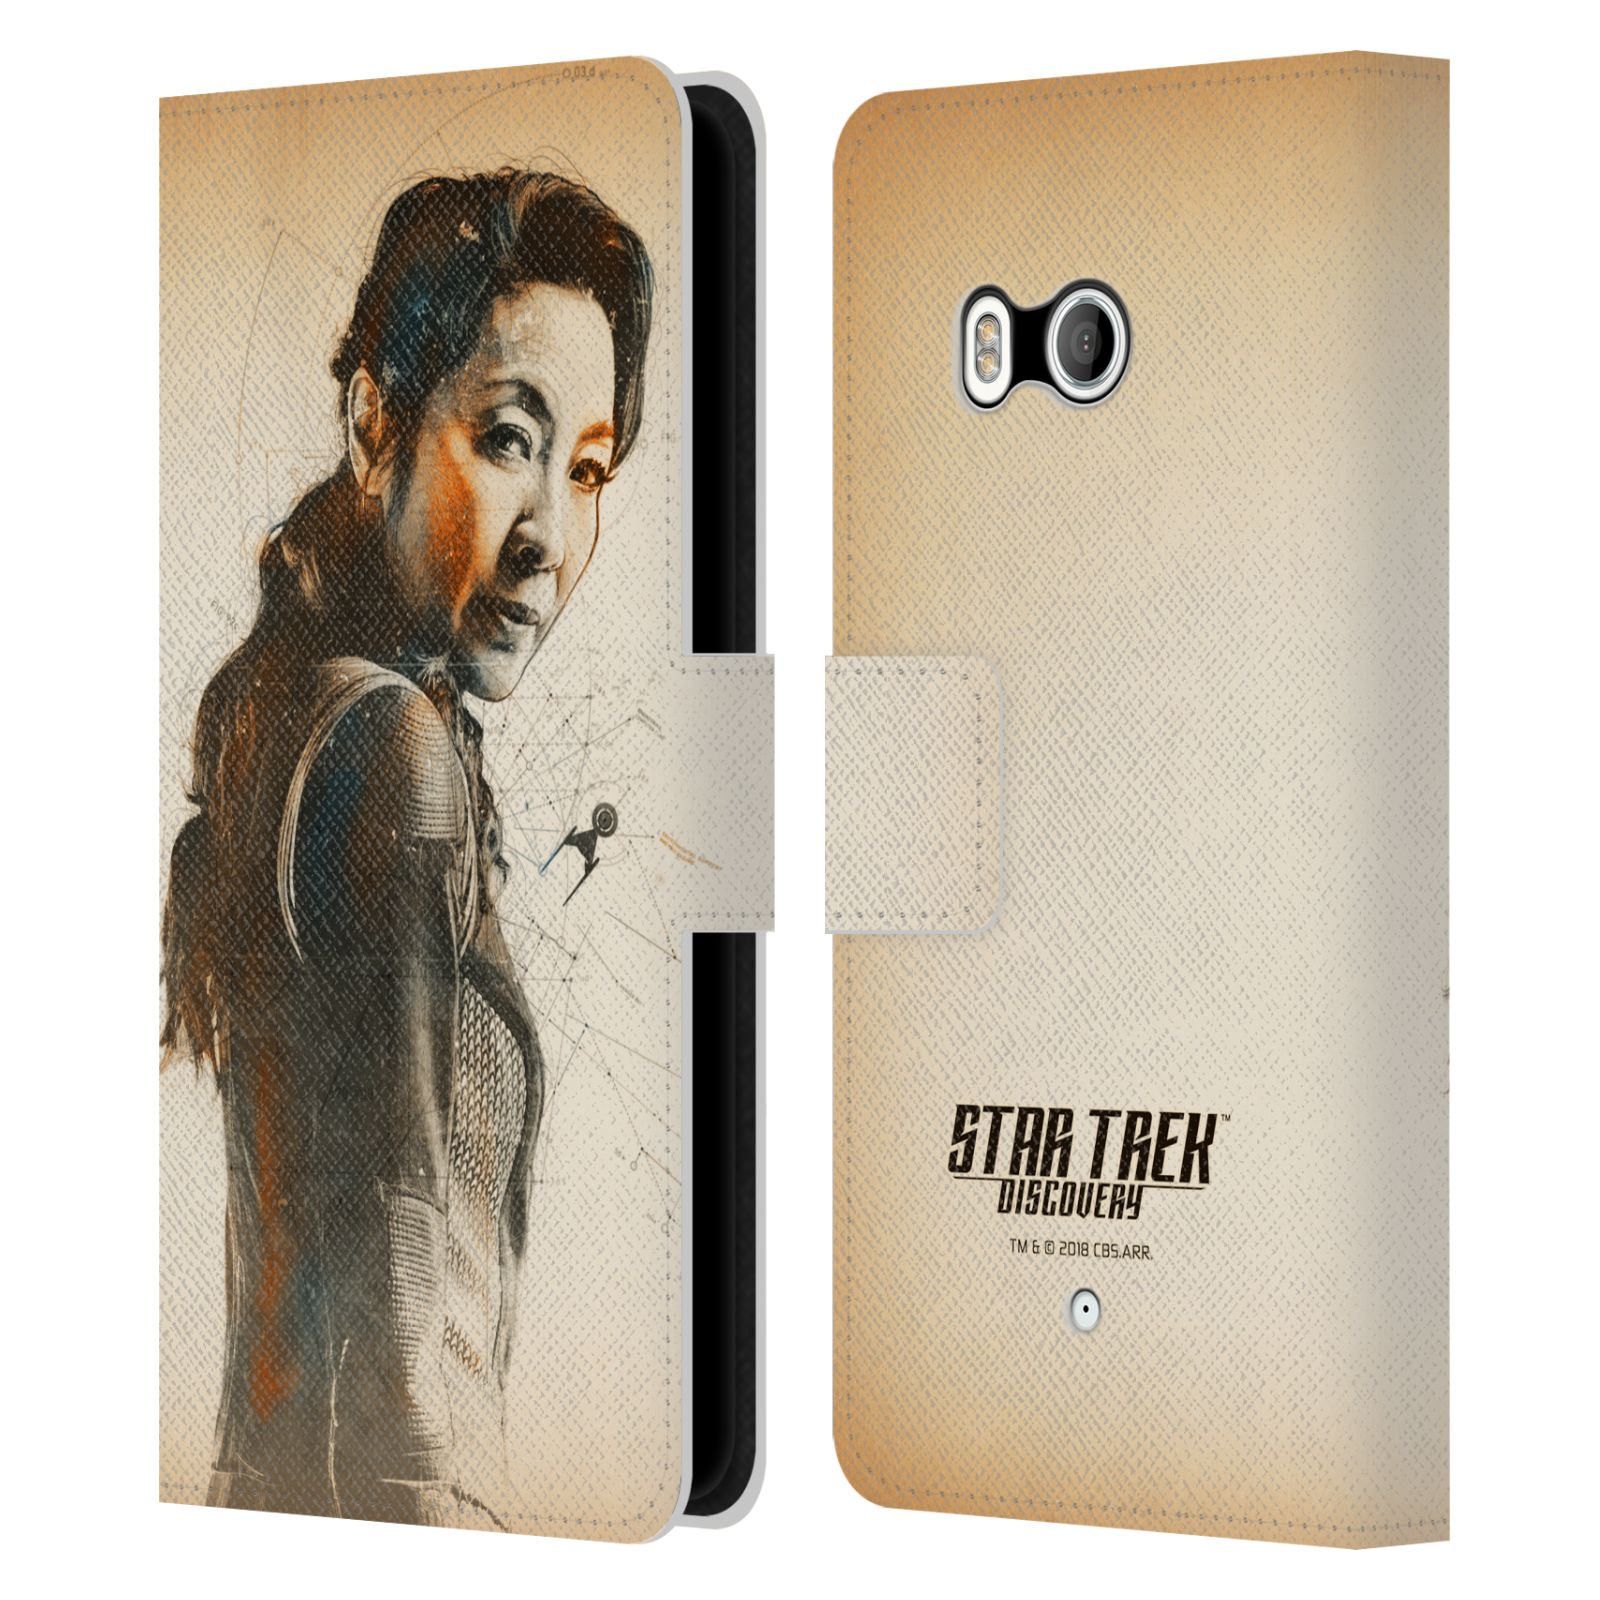 STAR-TREK-DISCOVERY-GRUNGE-PERSONNAGES-ETUI-COQUE-EN-CUIR-POUR-HTC-TELEPHONES-1